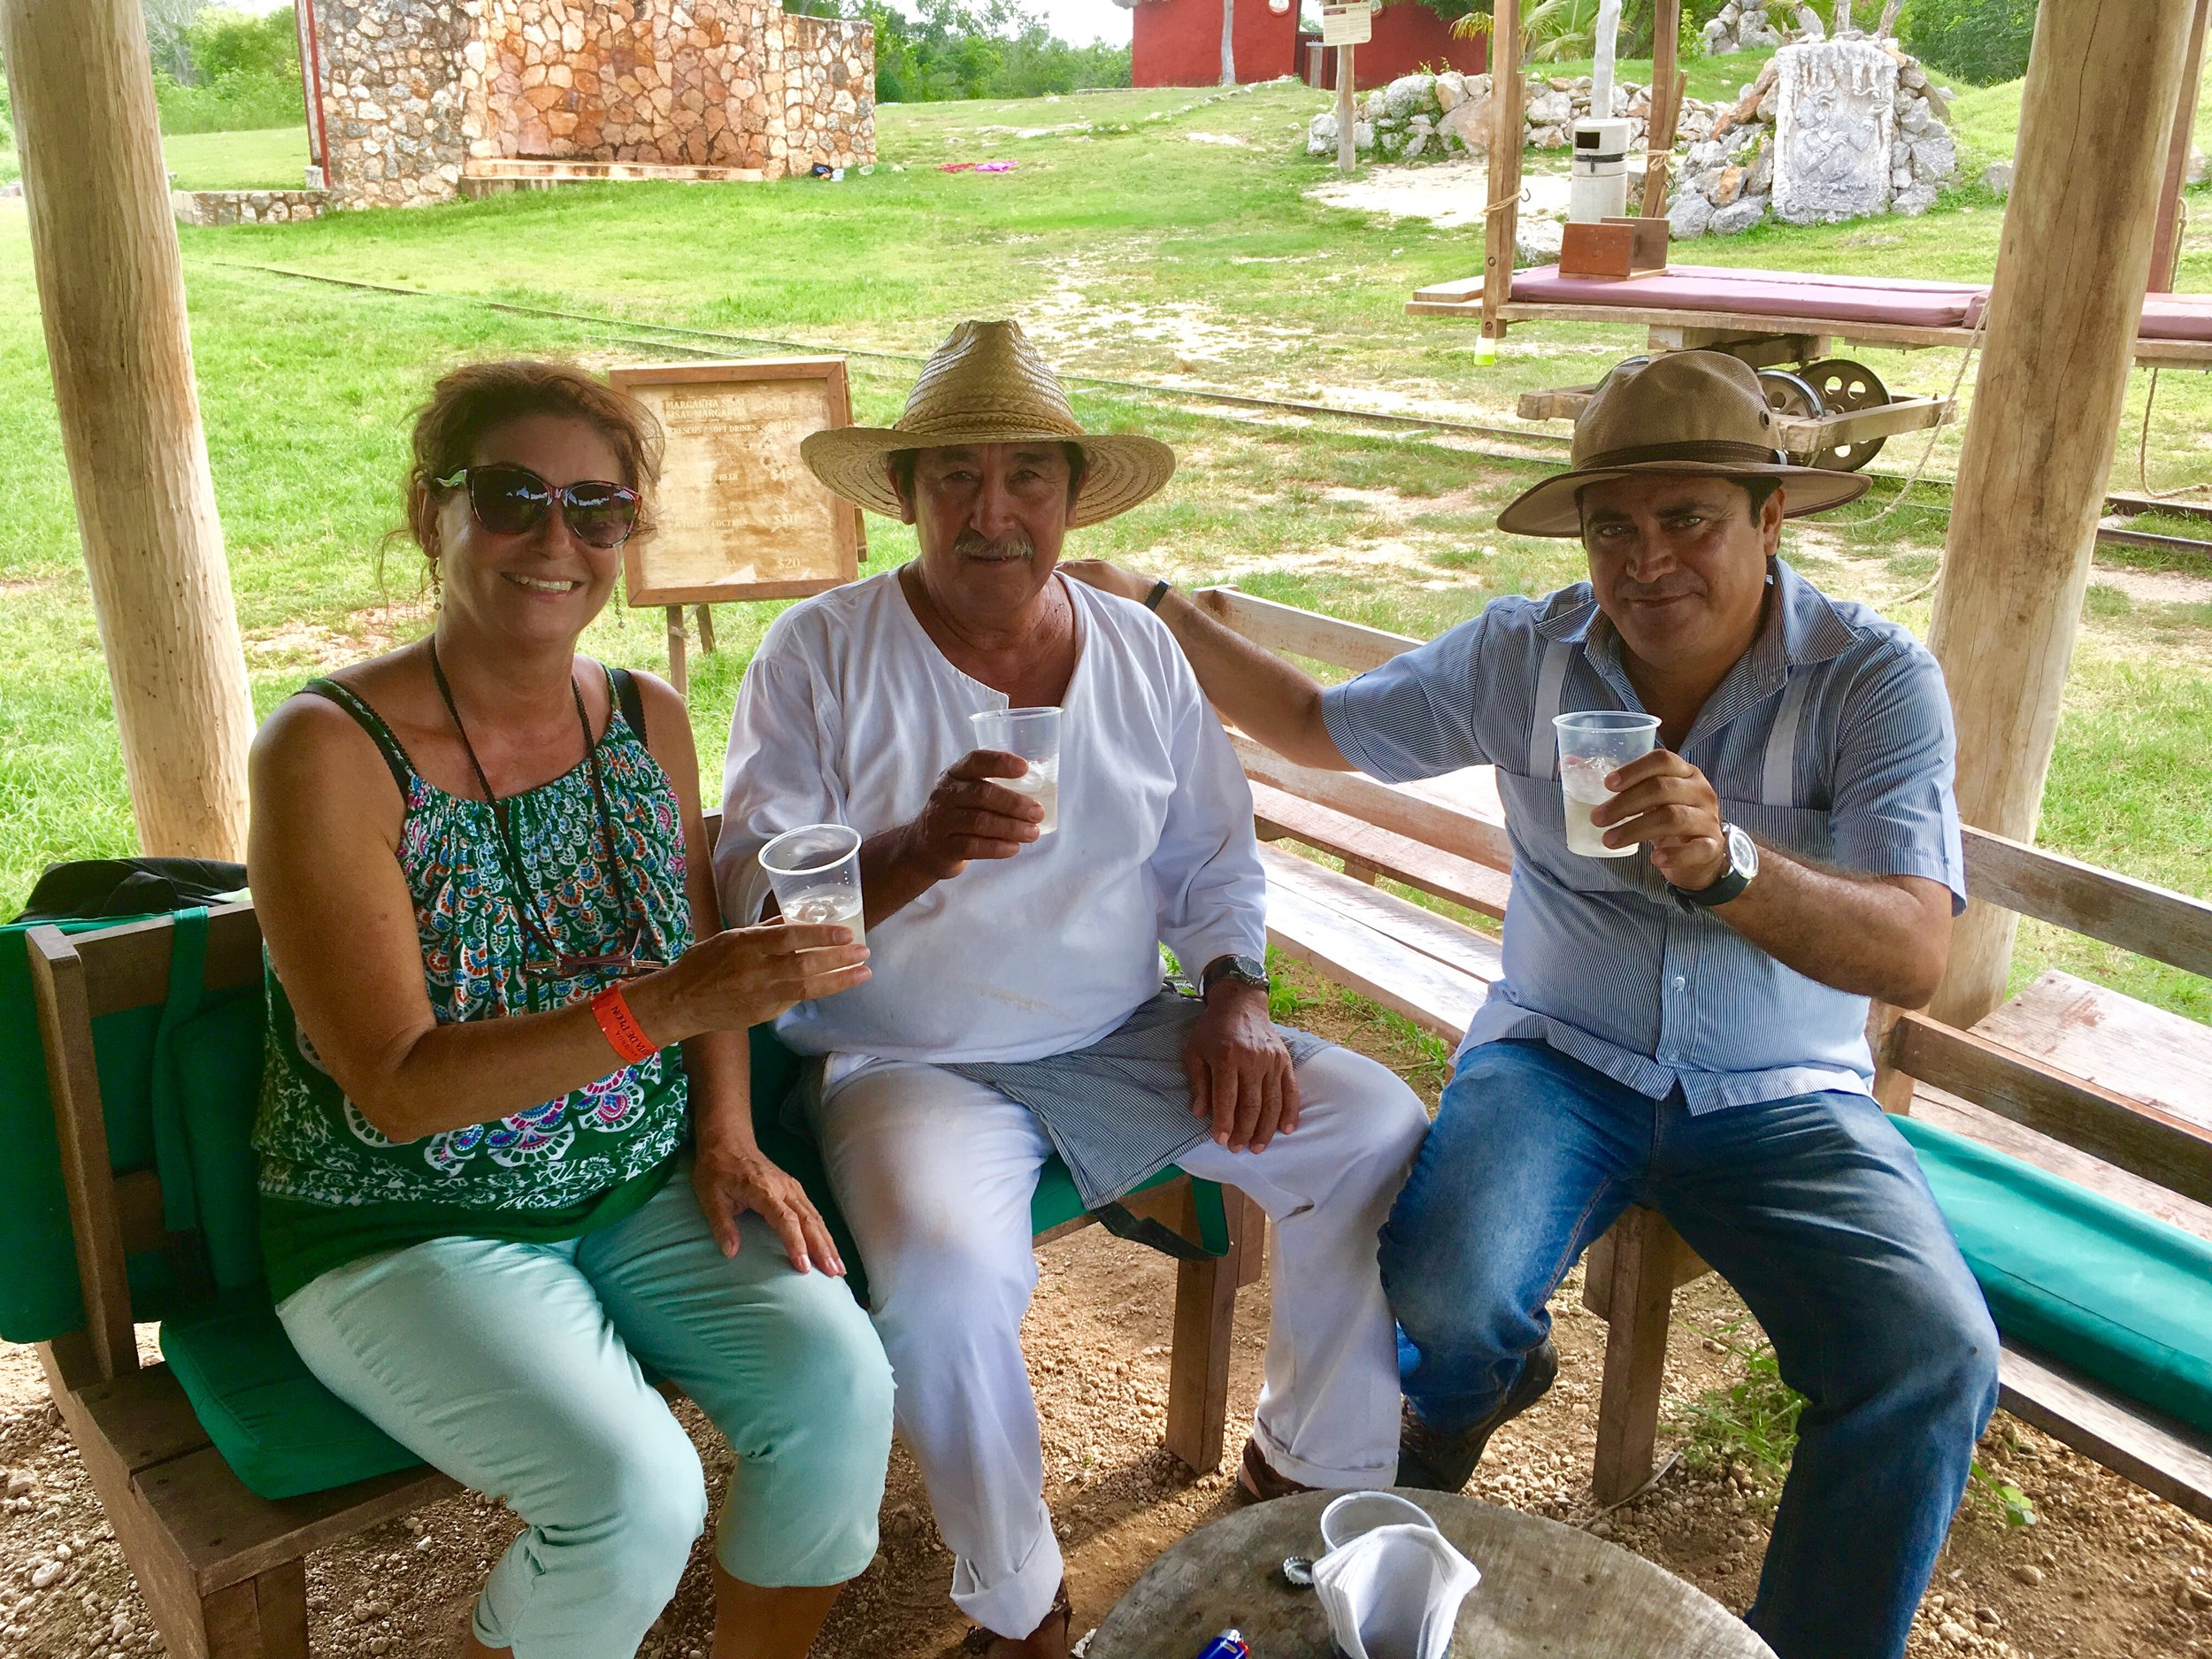 Tasting Margarita with the hacienda staff.